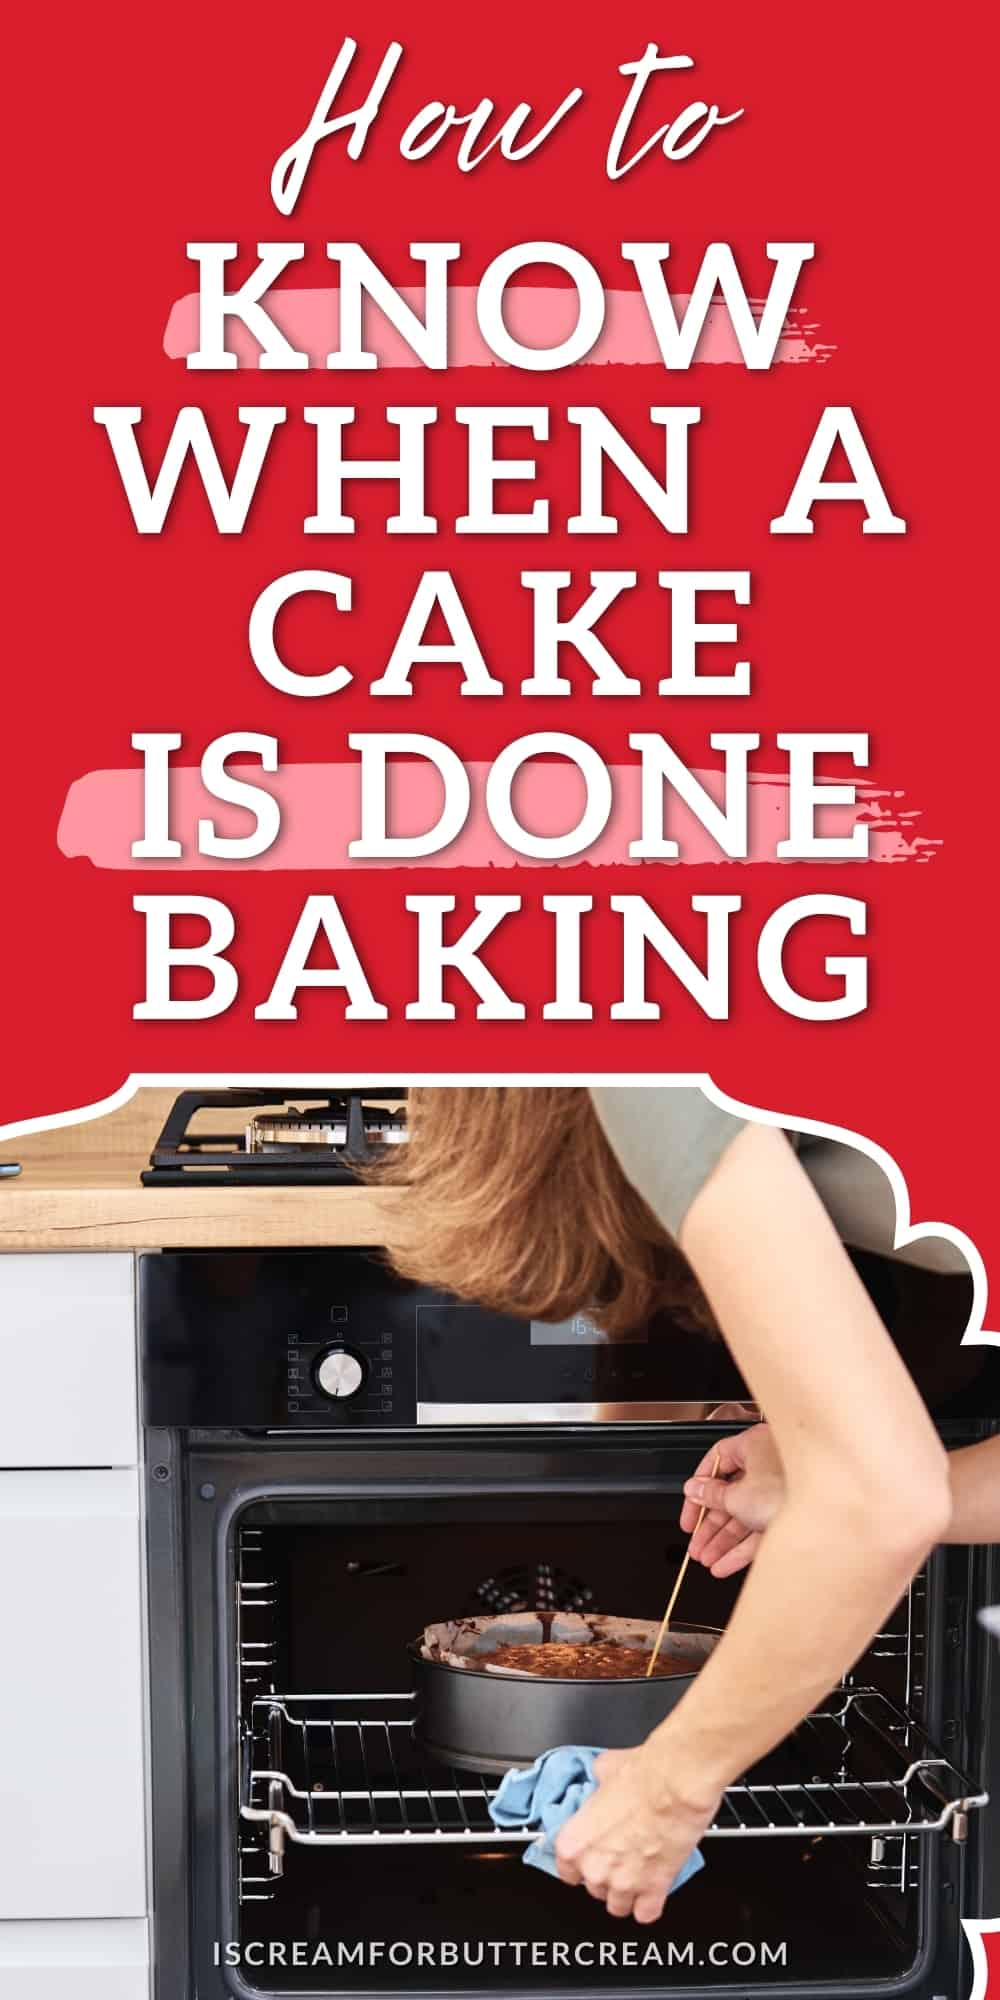 How to Tell When a Cake is Done